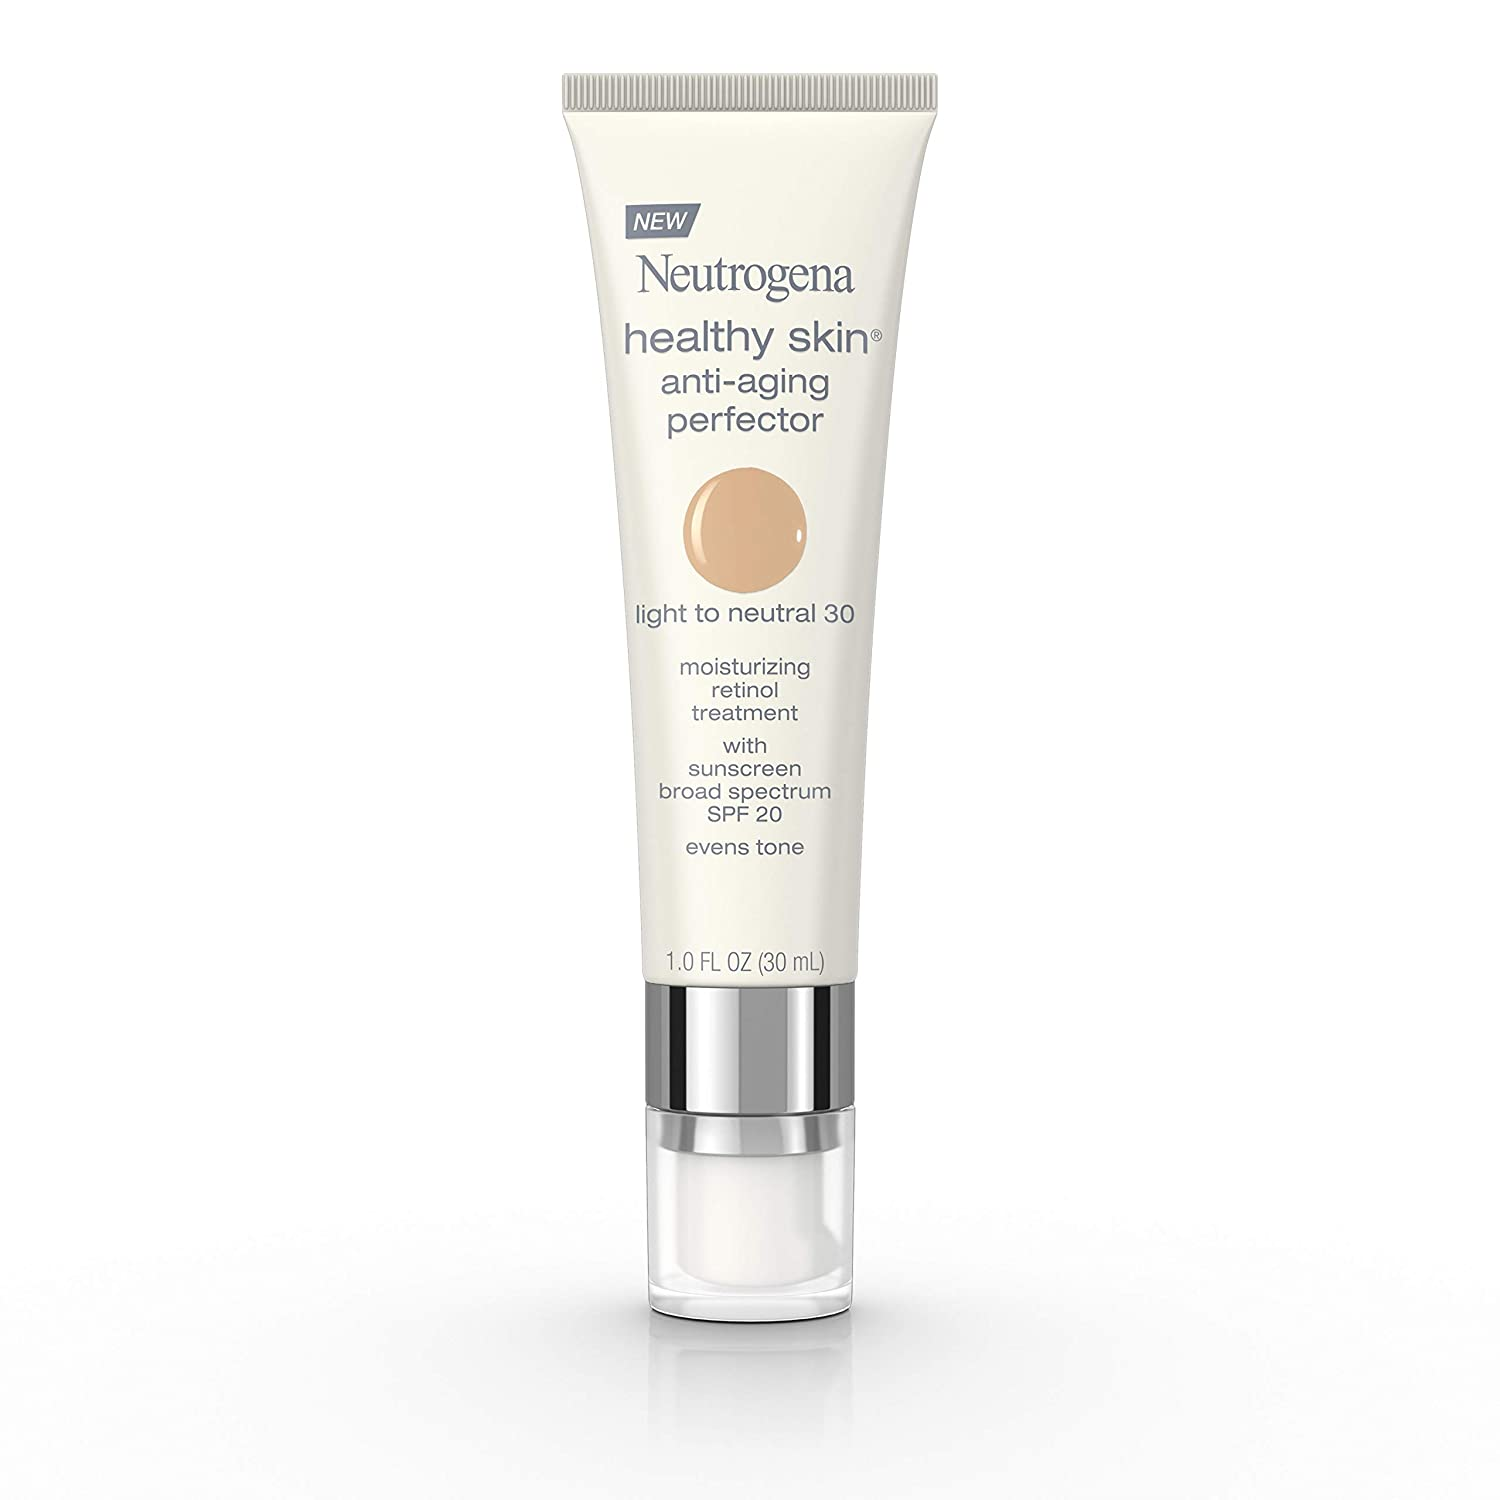 Neutrogena Healthy Skin Anti-Aging Perfector Tinted Facial Moisturizer and Retinol Treatment